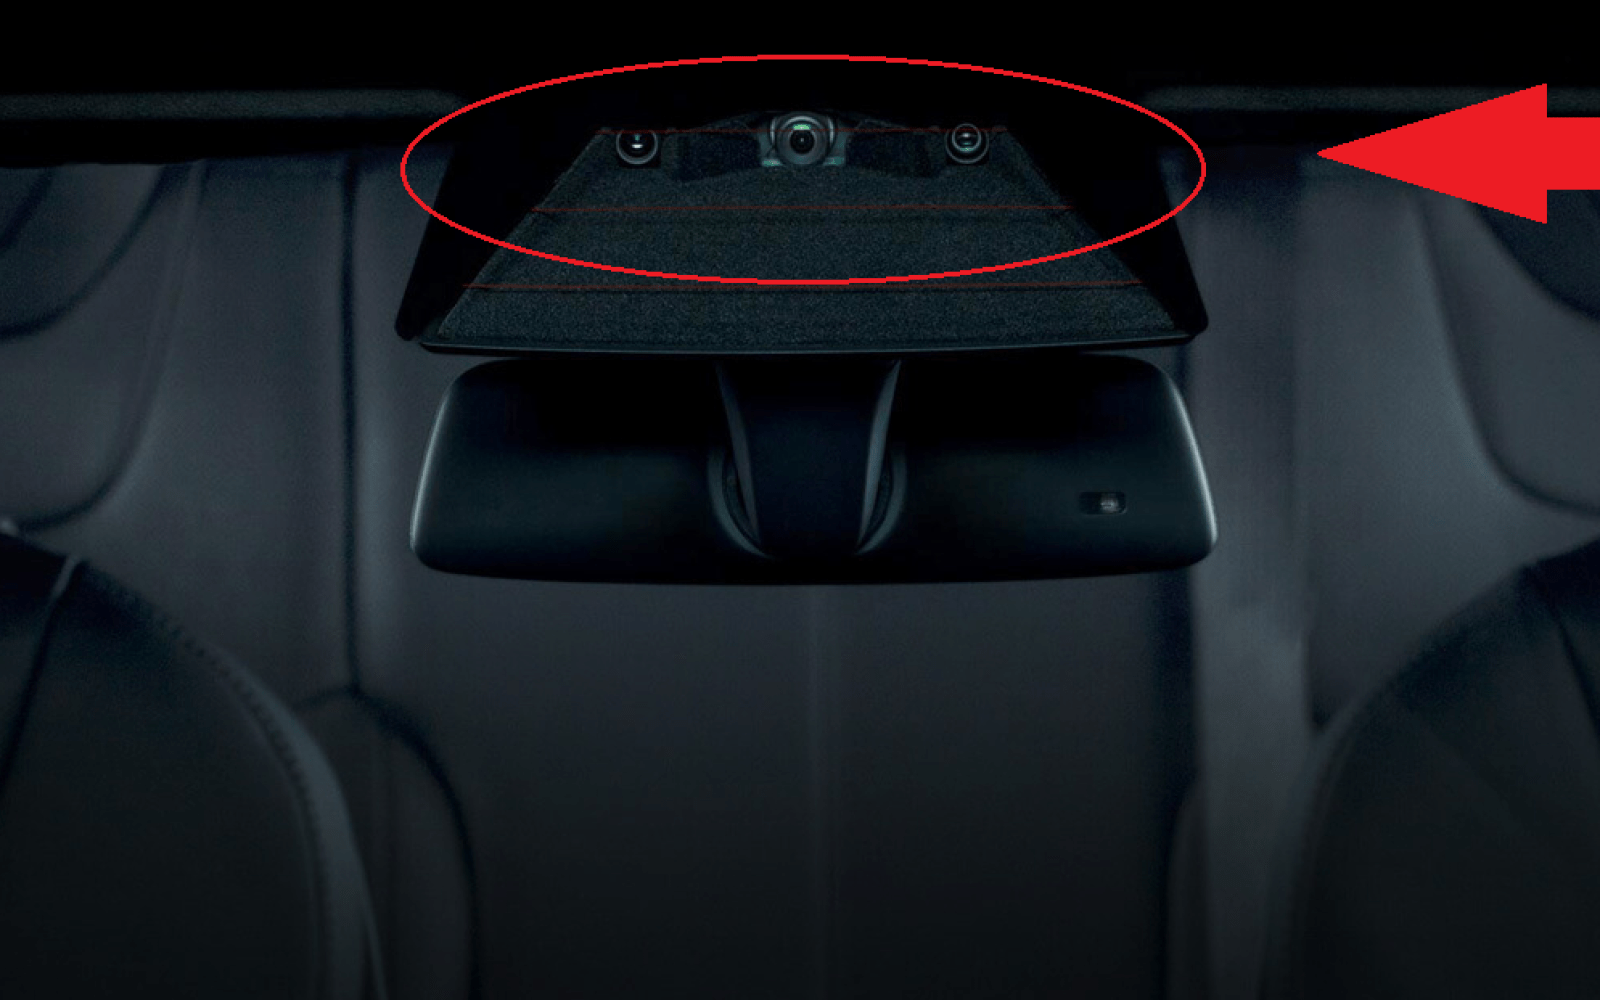 Tesla Autopilot is currently using only 1 out of 8 cameras of the new hardware suite, still very much in 'beta'